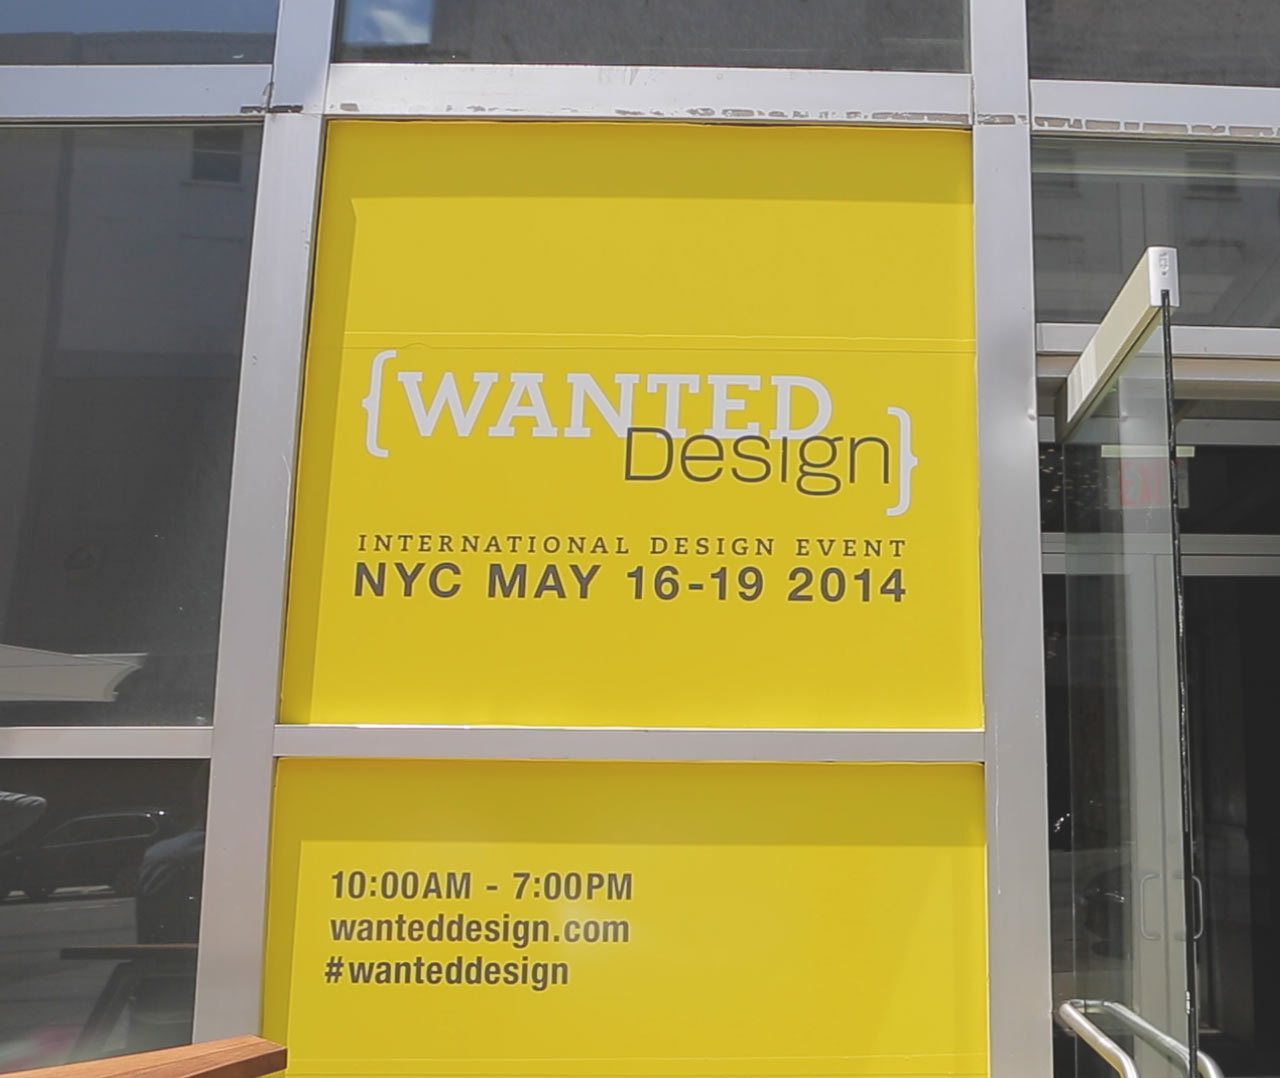 A Look at WantedDesign 2014